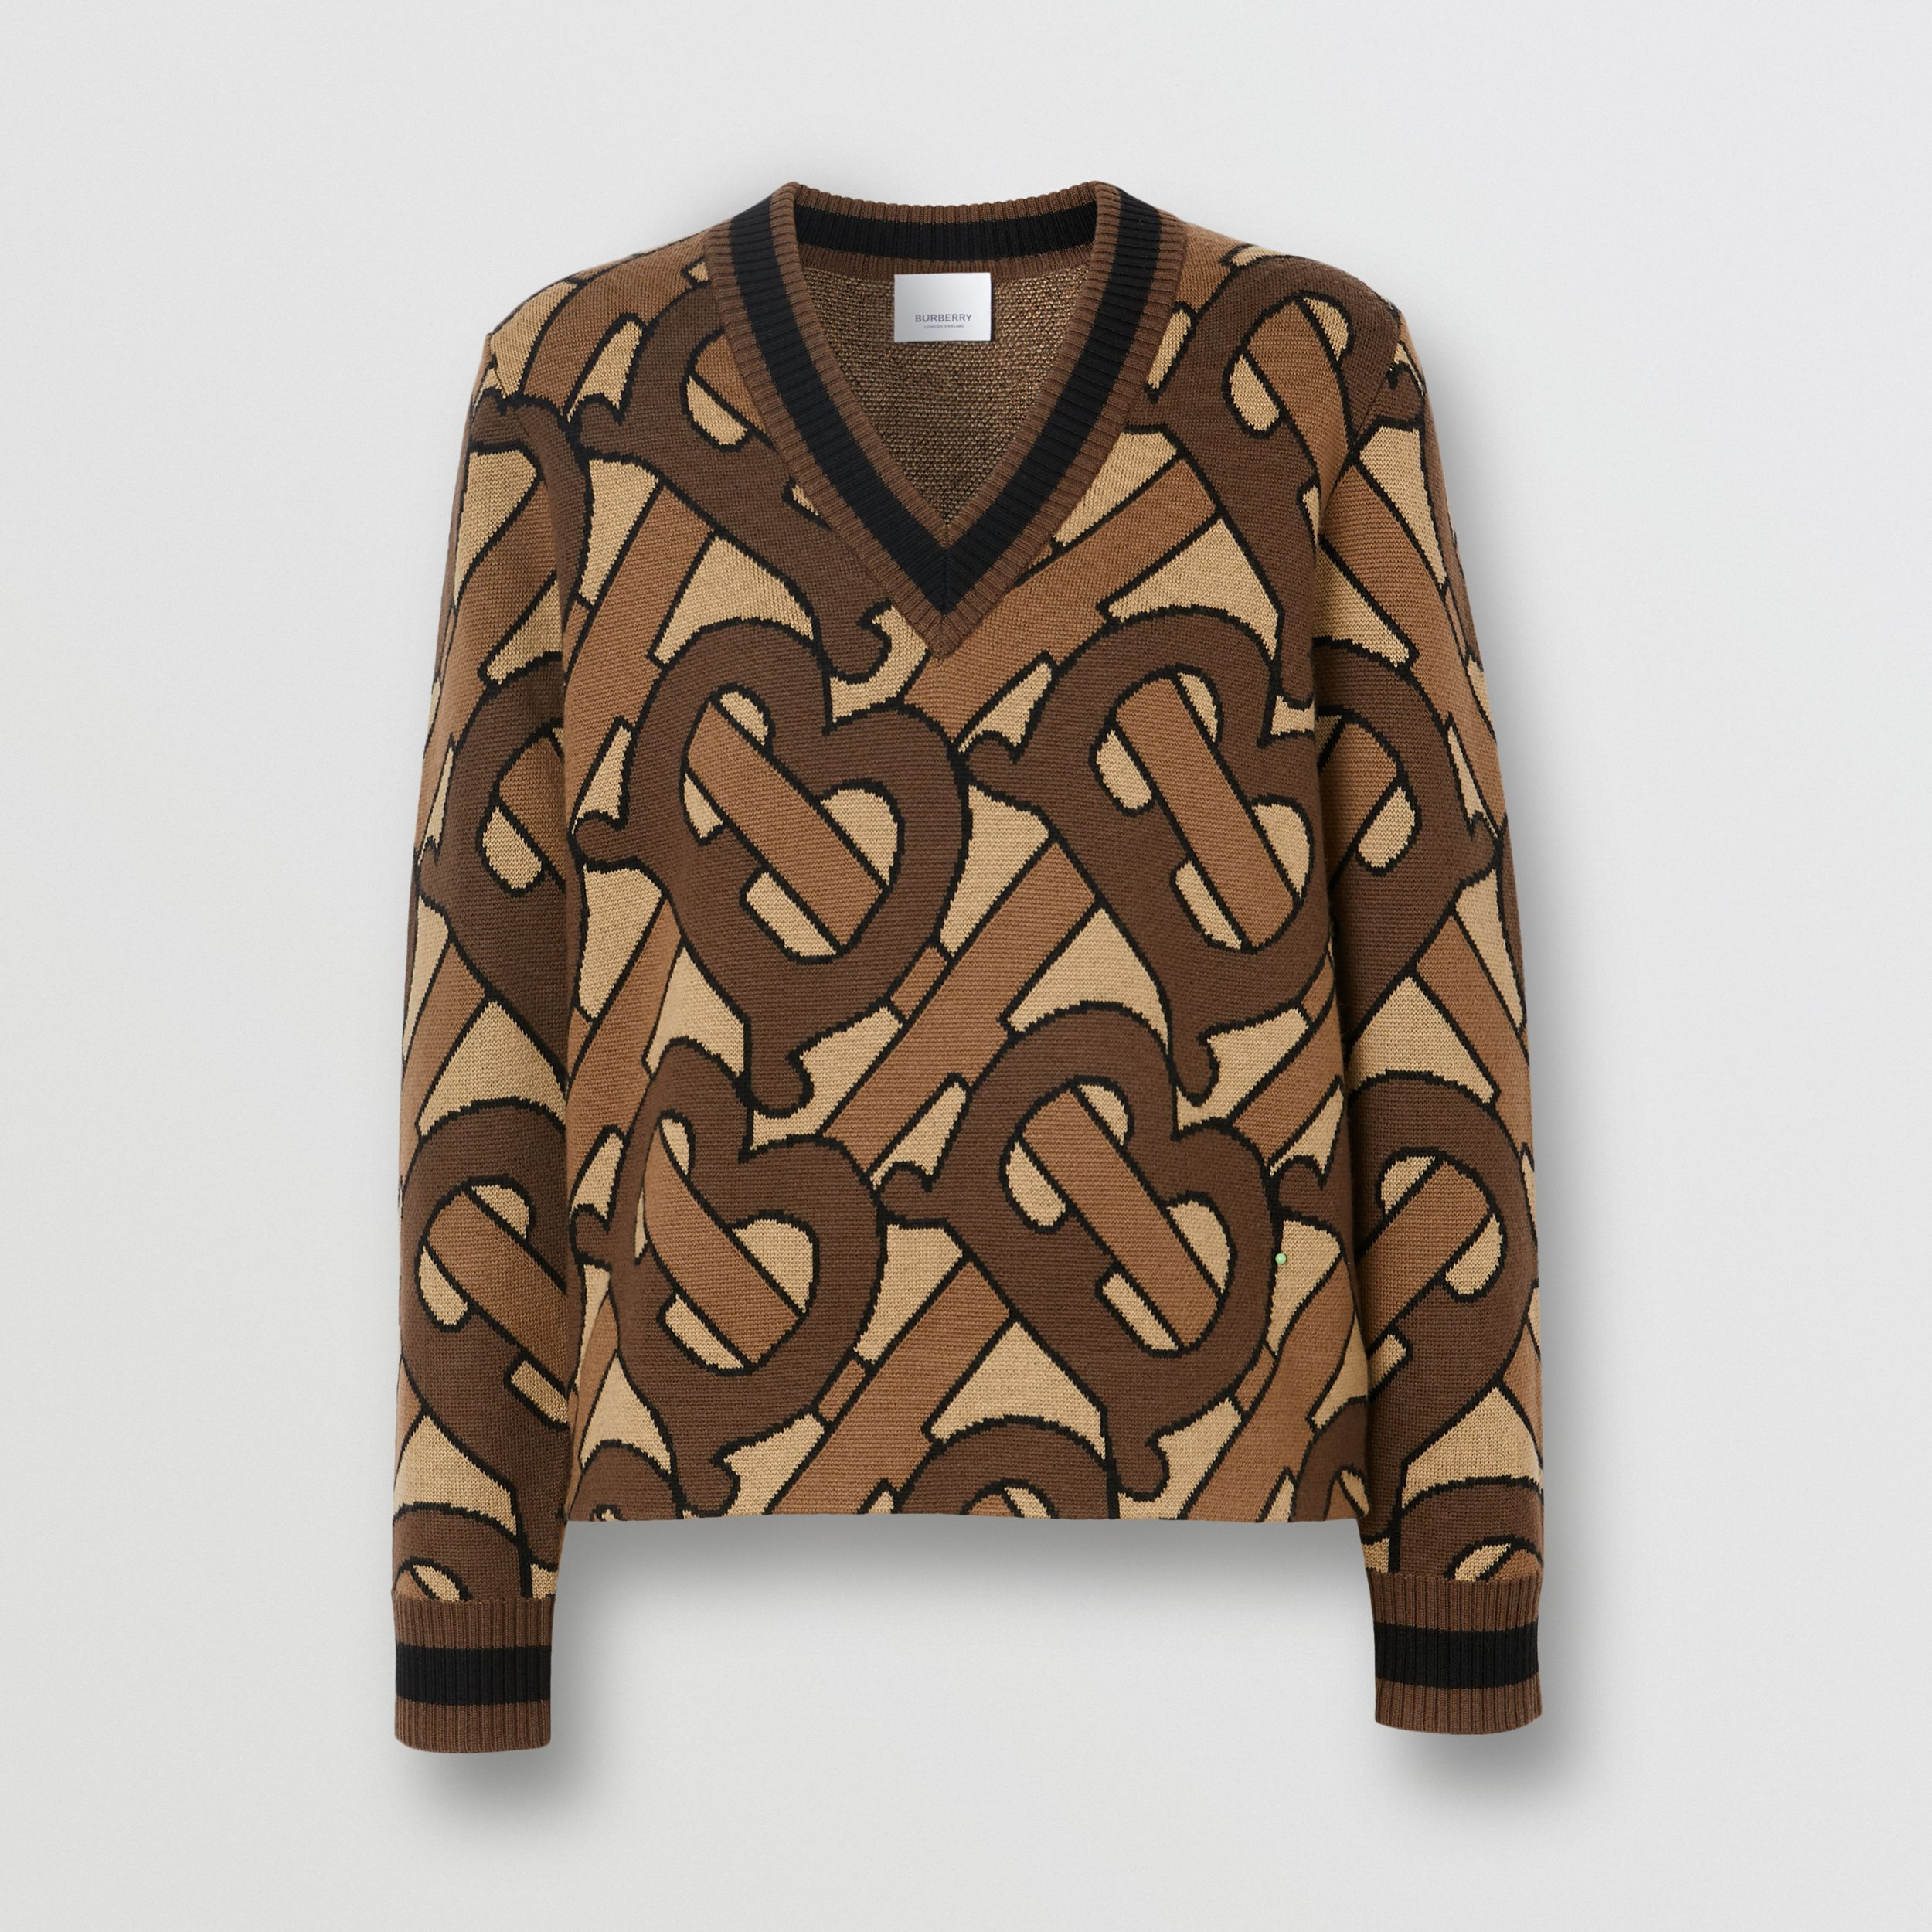 Monogram Intarsia Wool V-neck Sweater in Bridle Brown - Women | Burberry Canada - 4